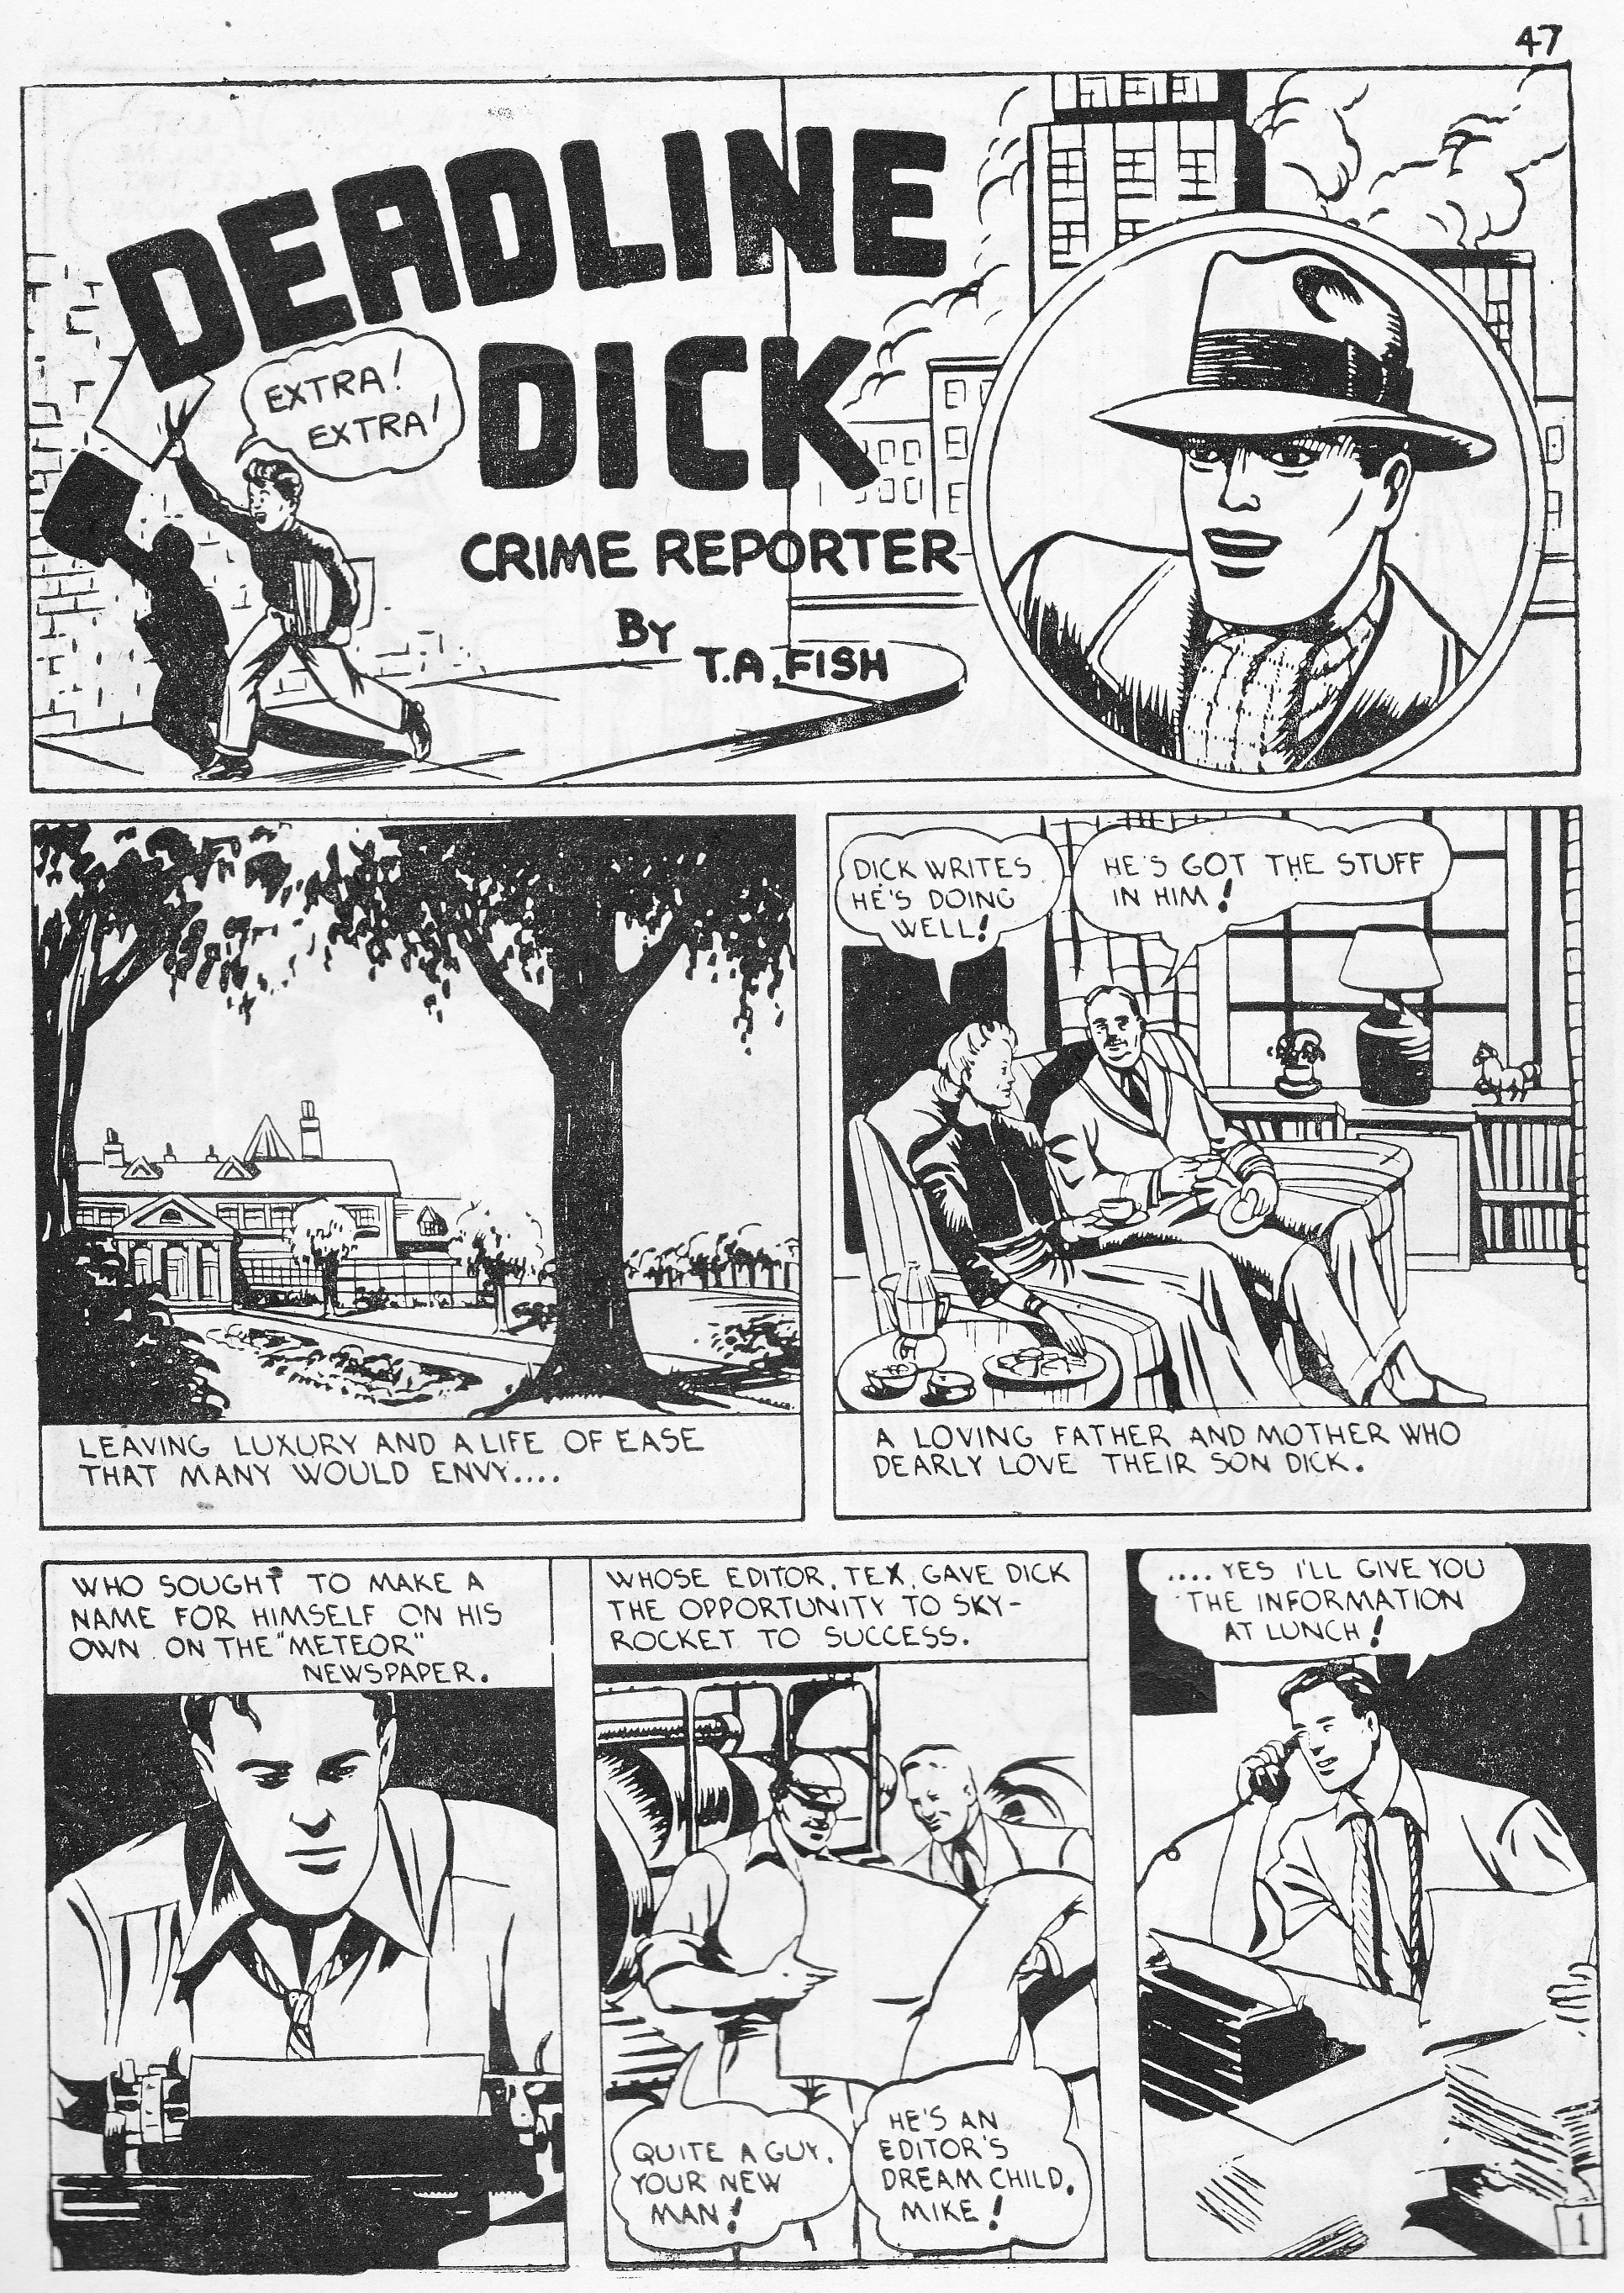 C:\Users\Robert\Documents\CARTOONING ILLUSTRATION ANIMATION\IMAGE CARTOON\IMAGE CARTOON D\DEADLINE DICK, 3 Aces Comics,  1-5, May 1942, 47.jpg